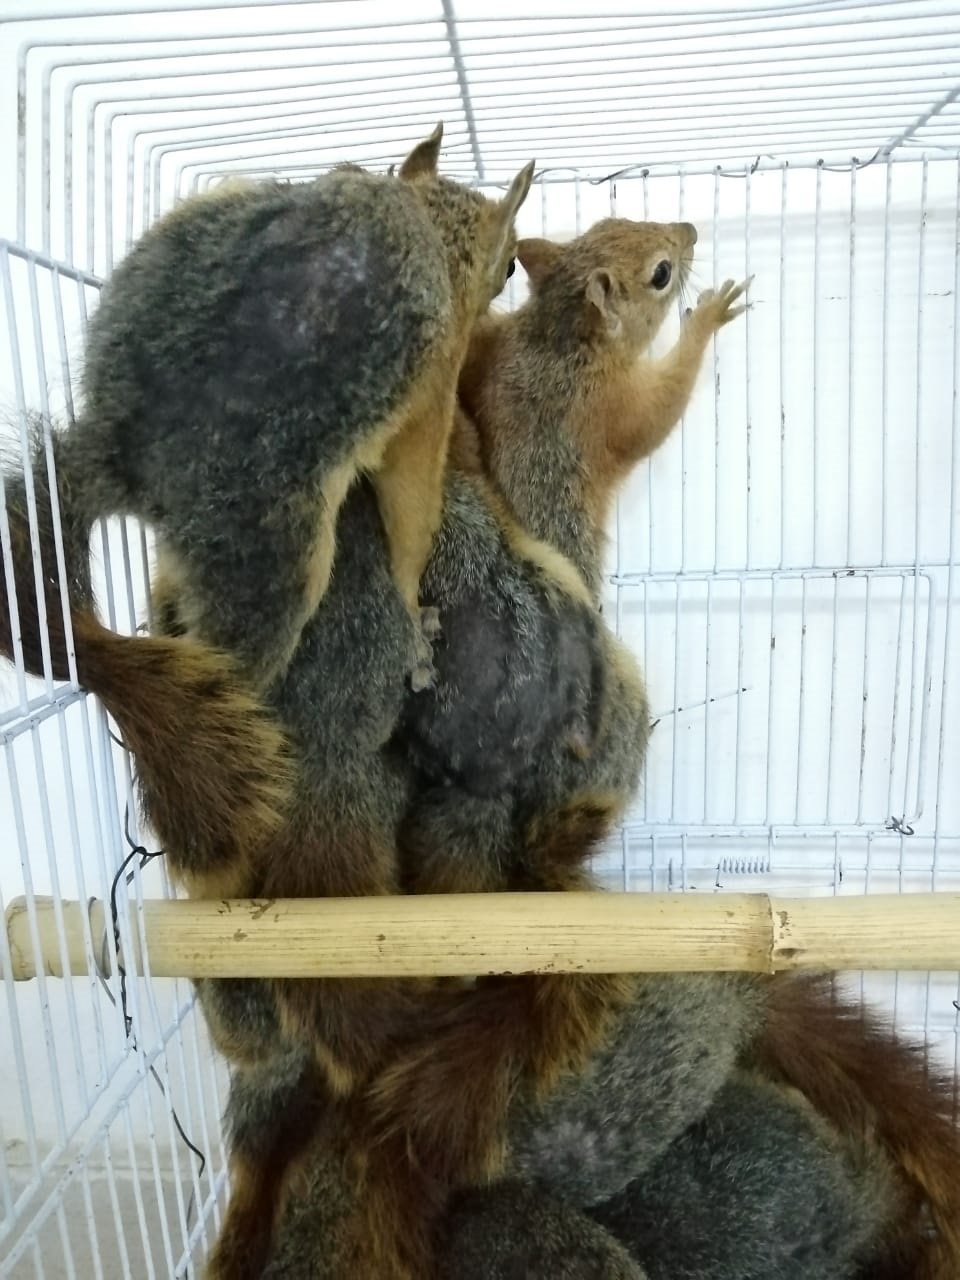 Squirrels as they arrived to NHC